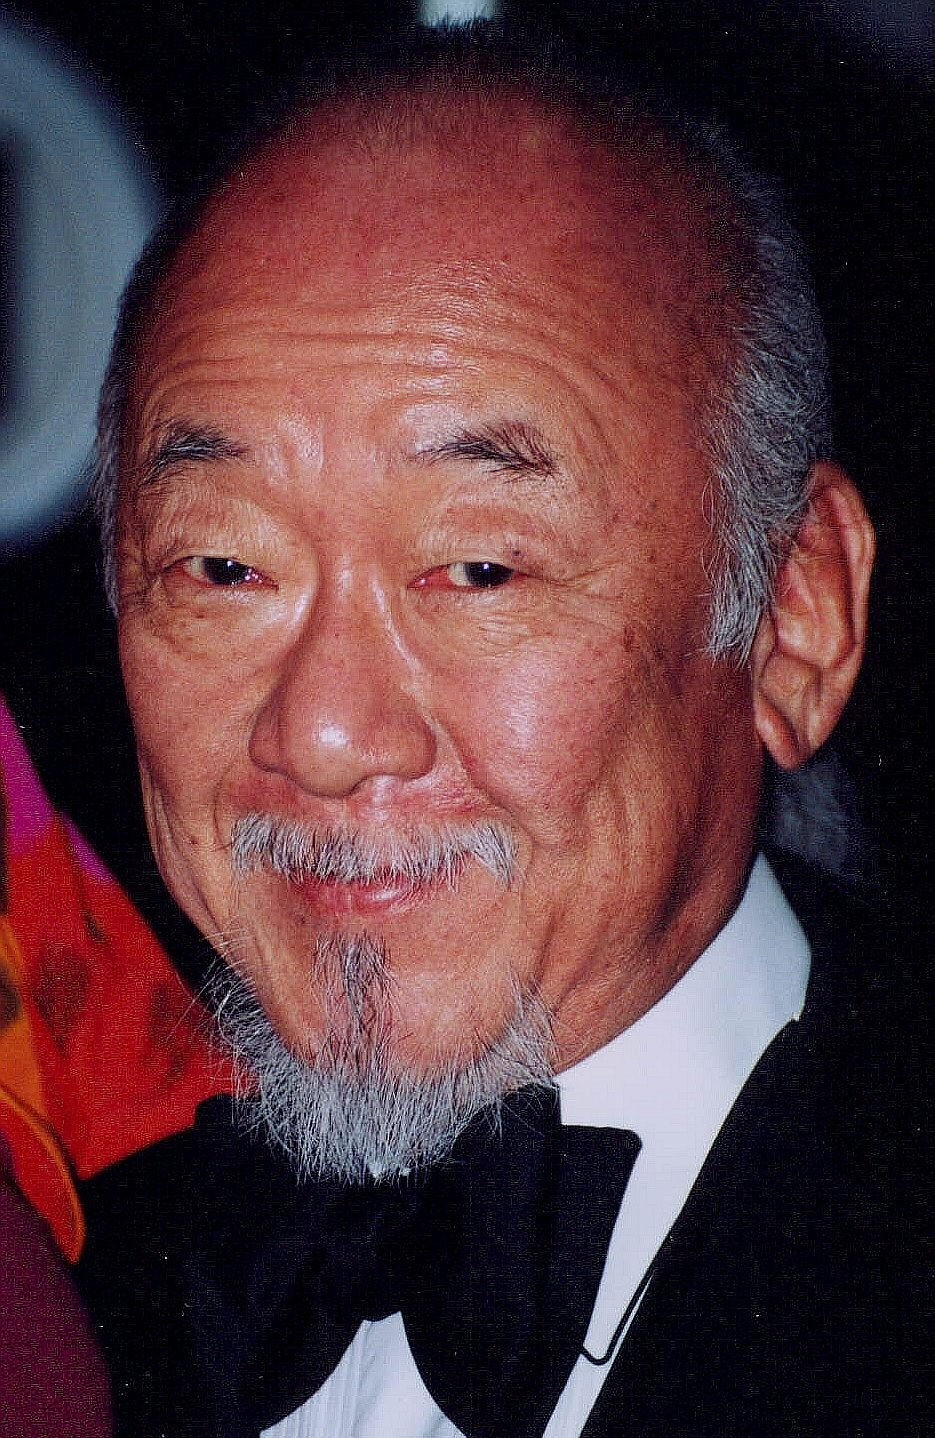 Pat Morita June 10, 2002 Wash D.C. Reagan Building | Photo: Wikimedia Commons Images